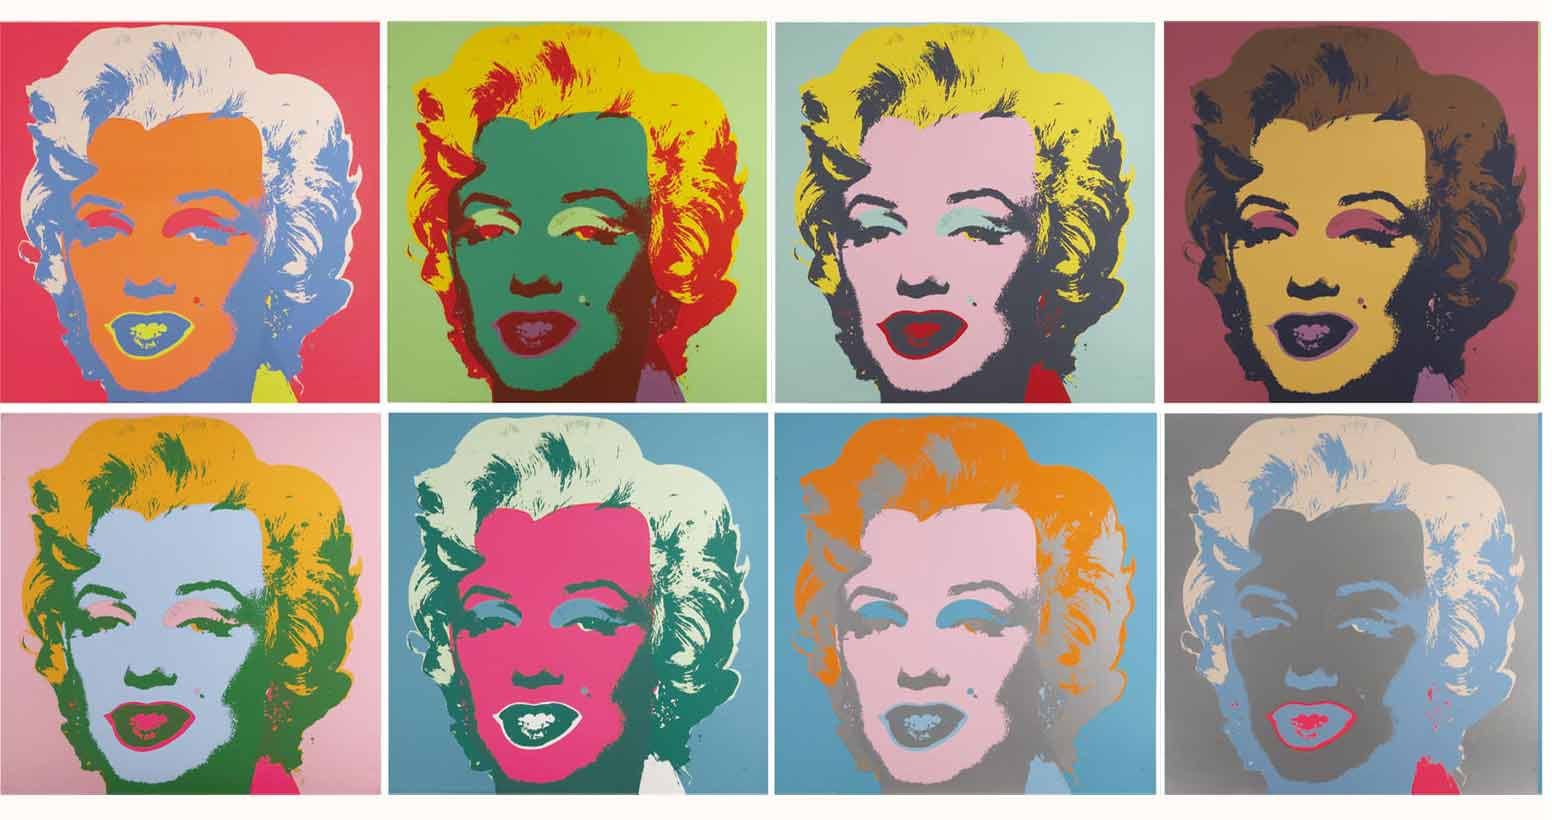 Marilyn Pop Art Andy Warhol Image Processing How To Ask Mathematica To Imitate Andy